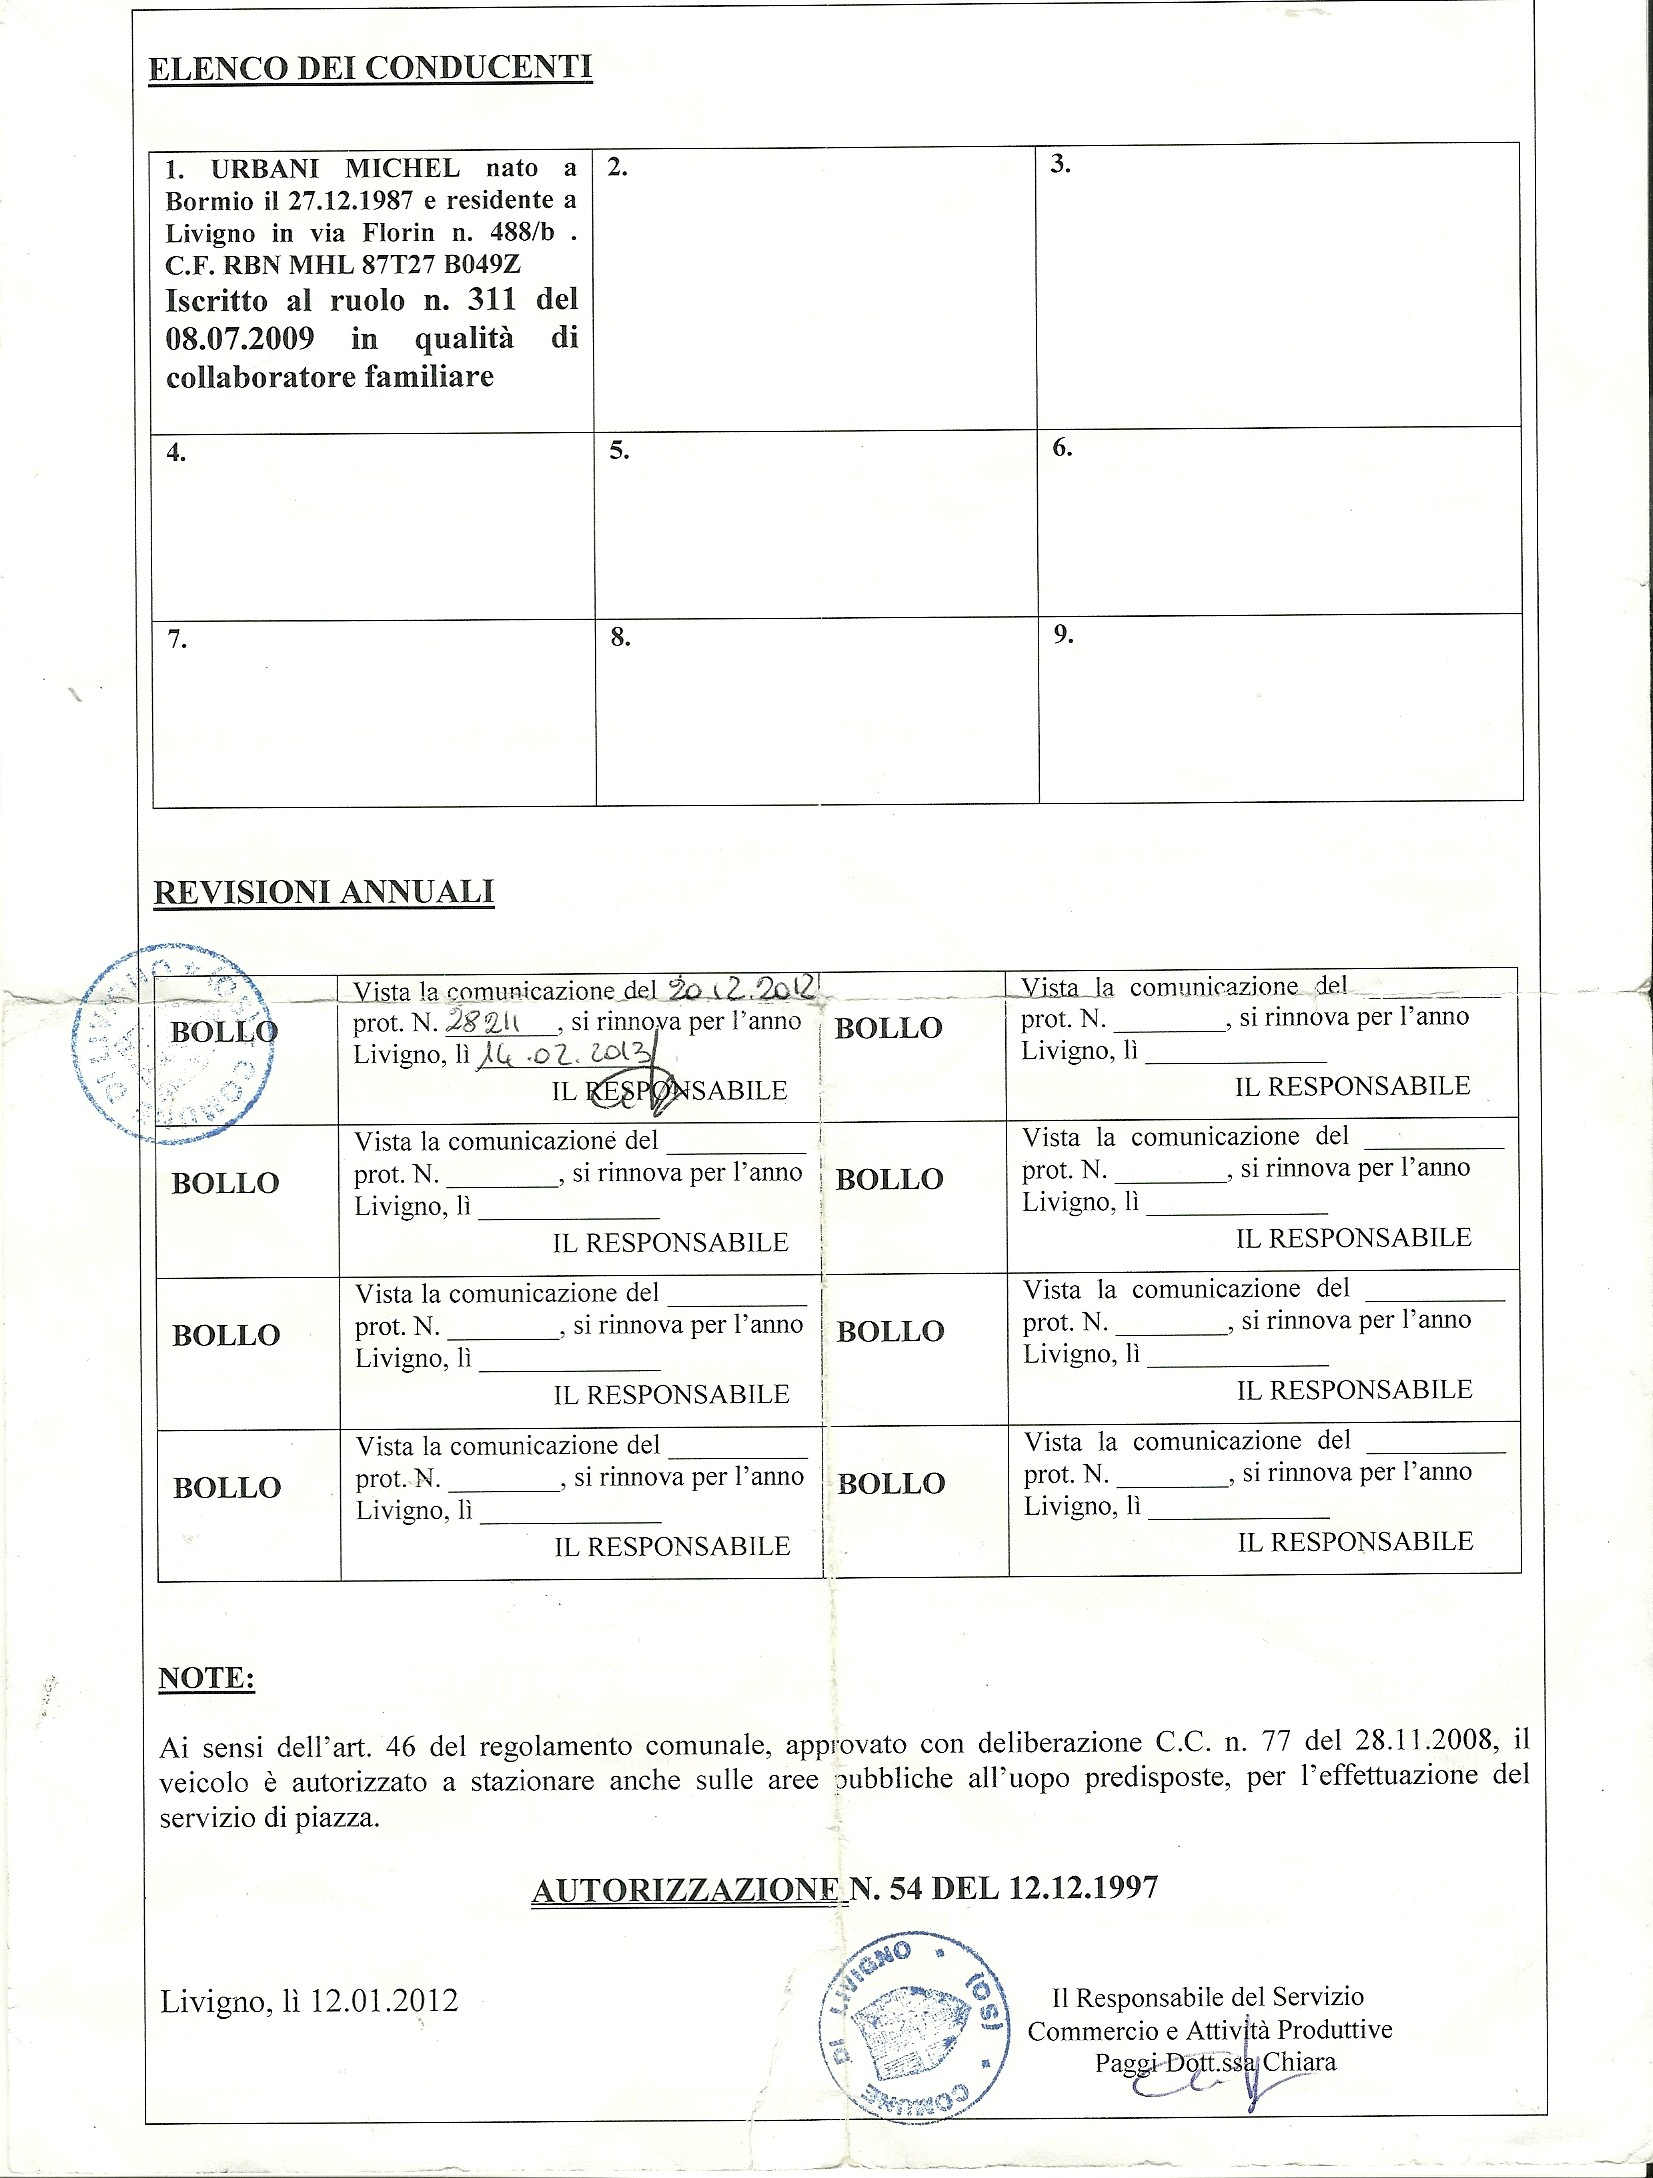 Livigno and St Moritz taxi transport licence